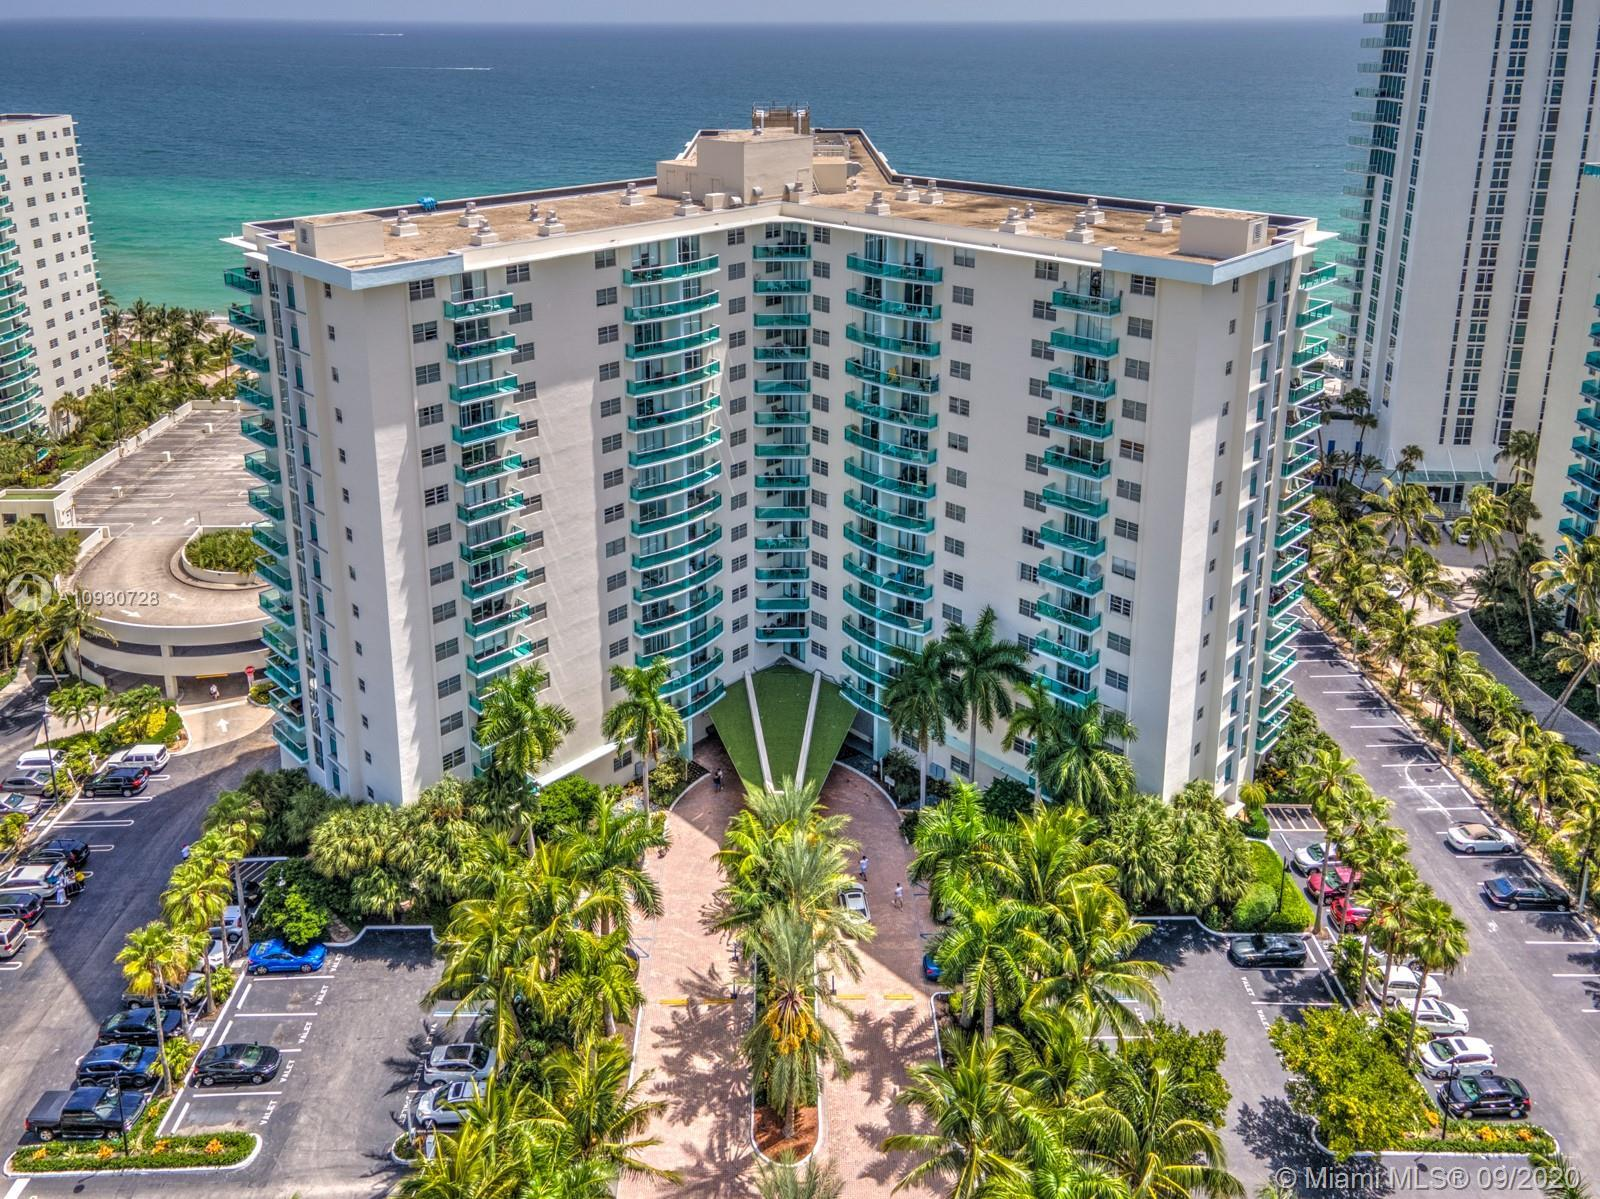 intercoastal and panoramic skyline views of Hollywood is what you'll find in this excellently priced